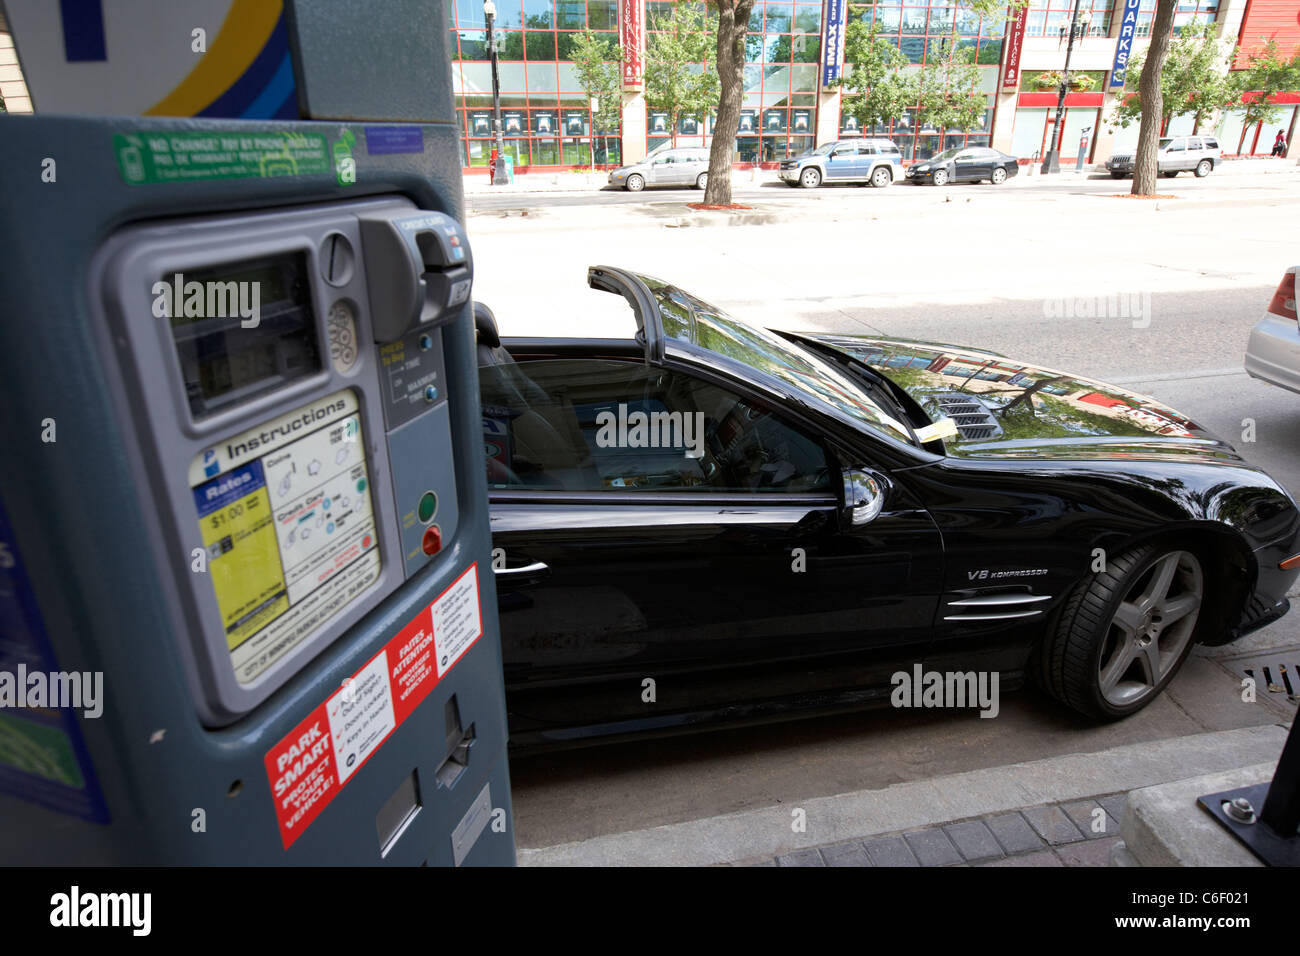 parking ticket on luxury mercedes car illegally parked on street in downtown winnipeg manitoba canada - Stock Image